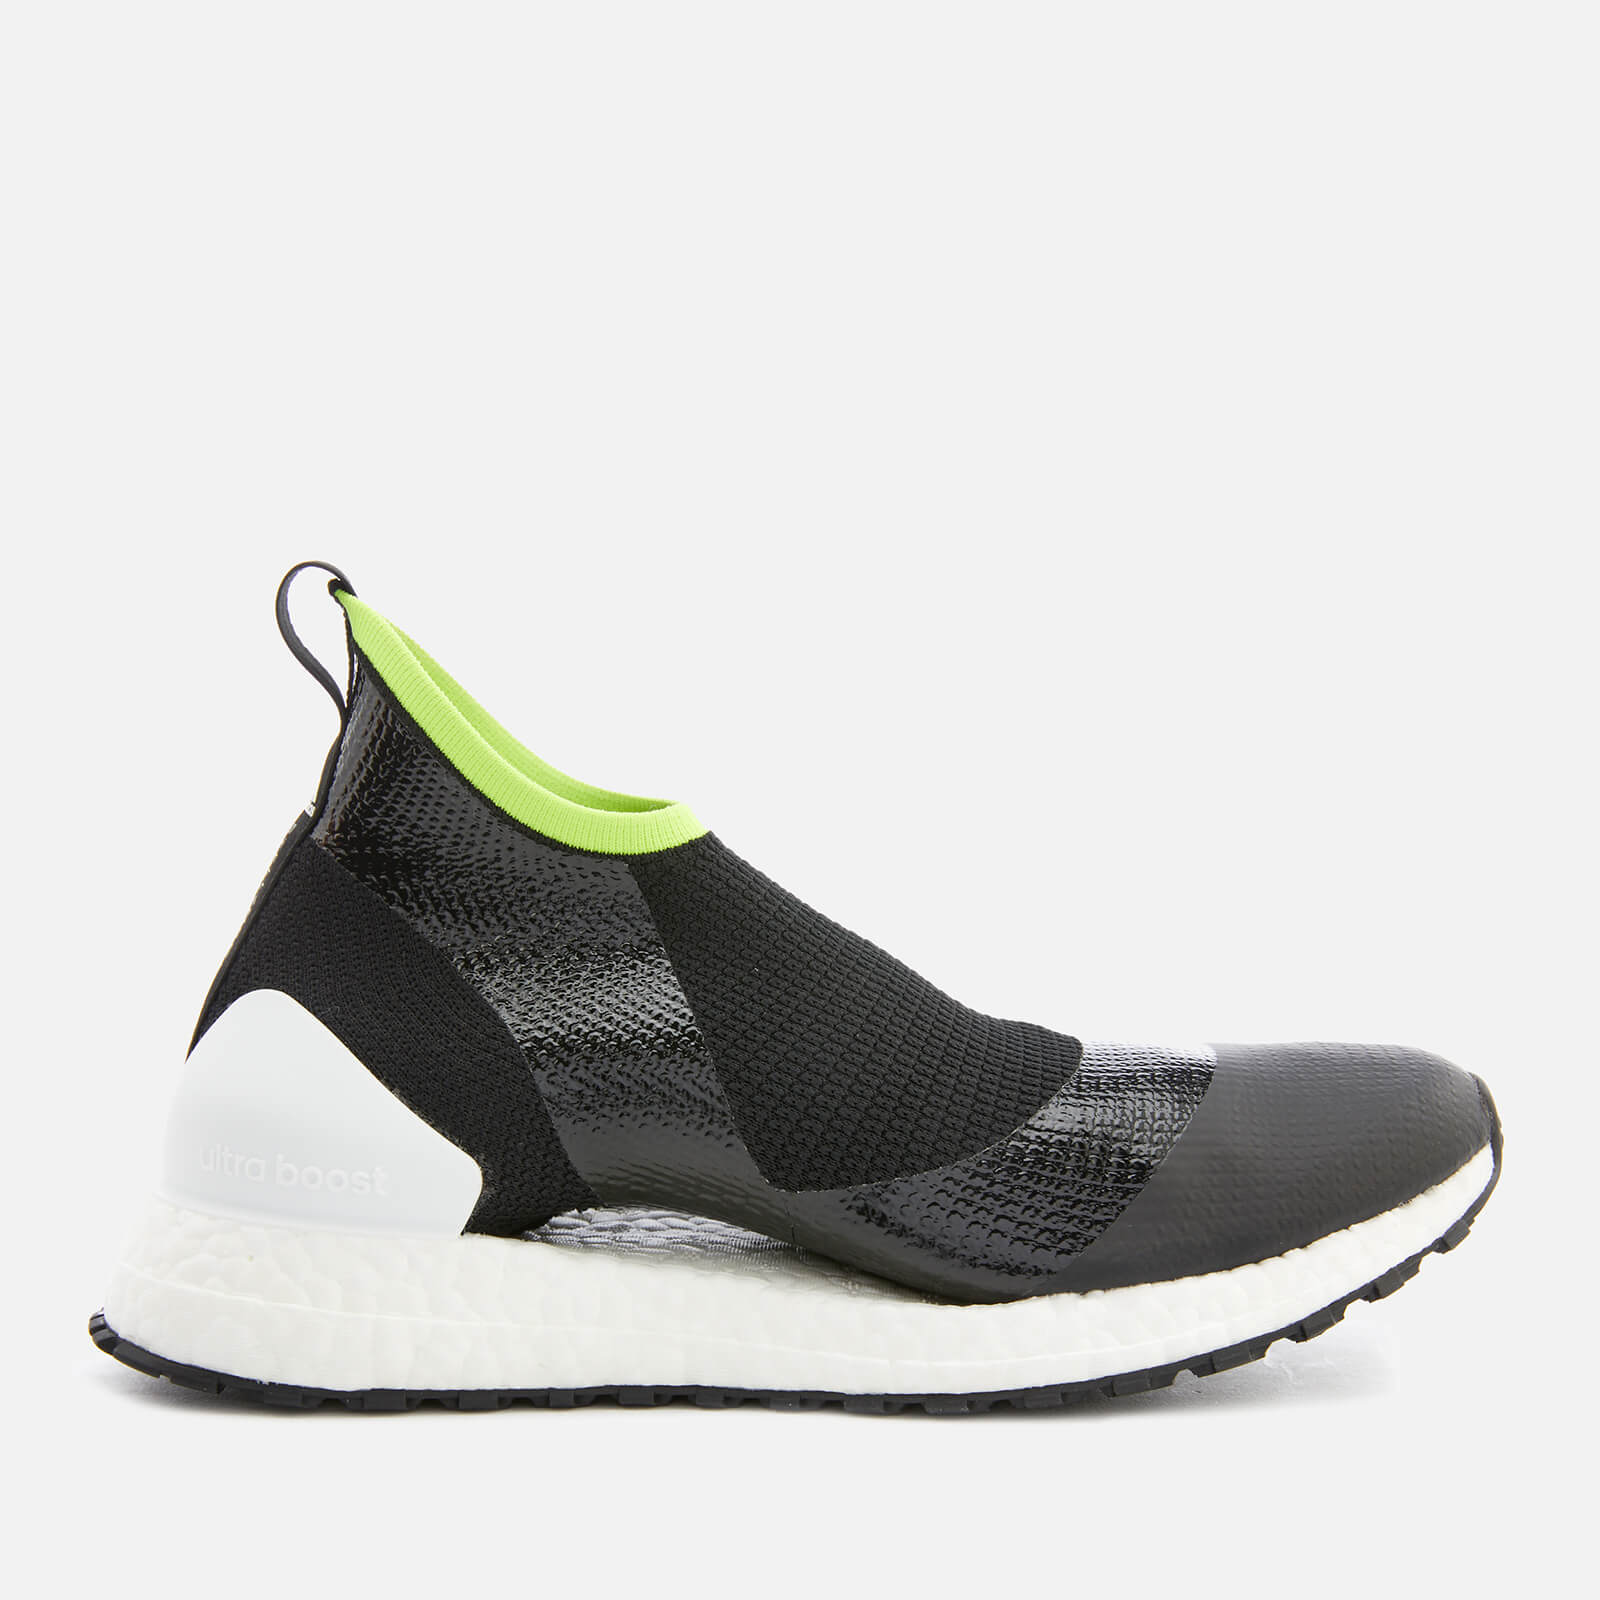 fb01f6fc3fa37 adidas by Stella McCartney Women s Ultraboost X All TerrainTrainers - Core  Black White Solar Slime - Free UK Delivery over £50